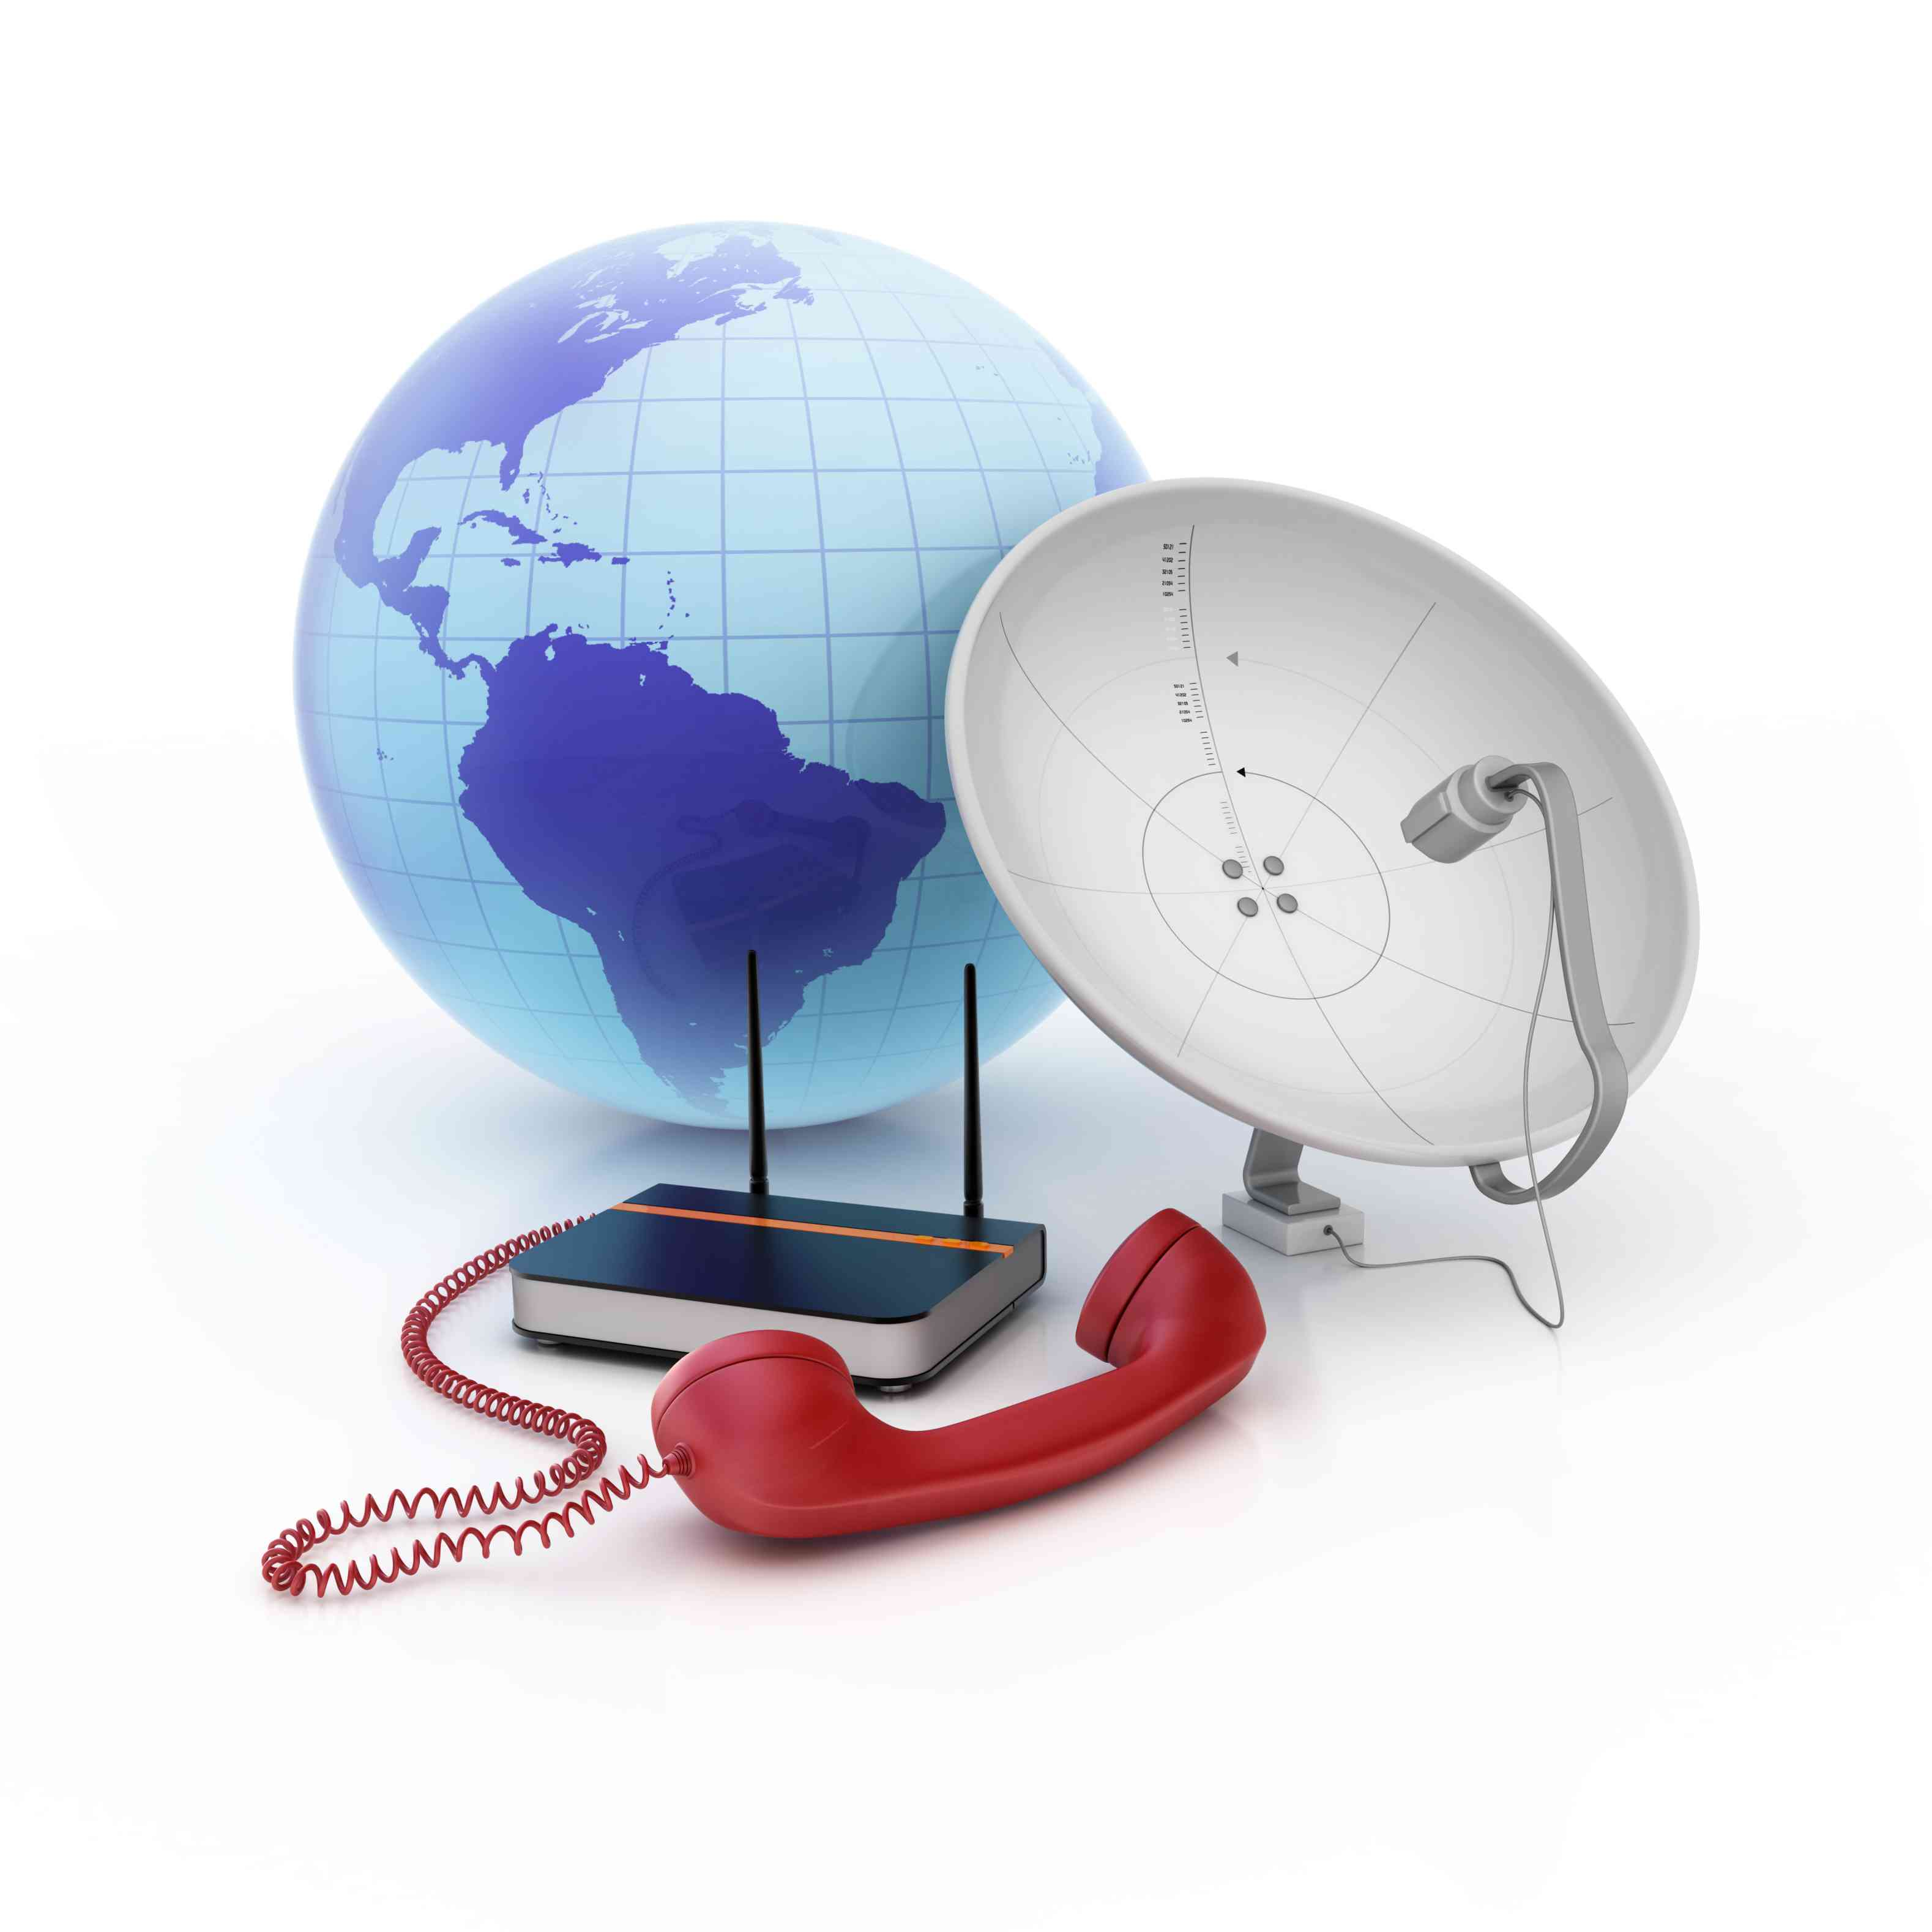 Modern telecommunications devices with globe in the background